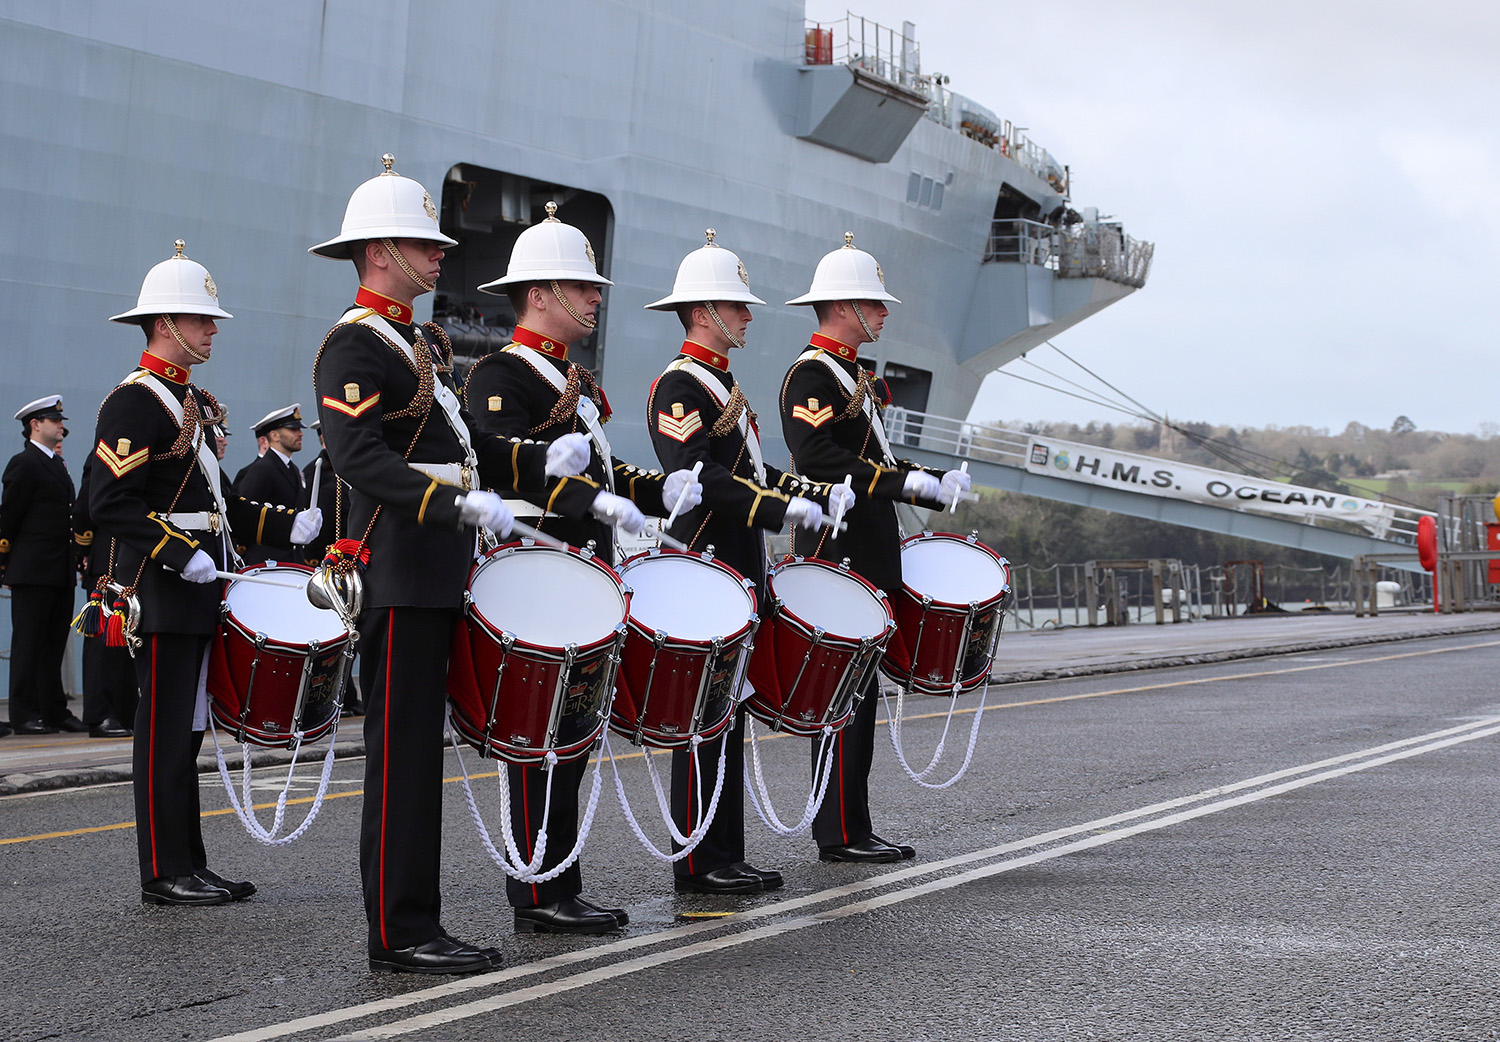 HMS Ocean leaves service with a royal farewell